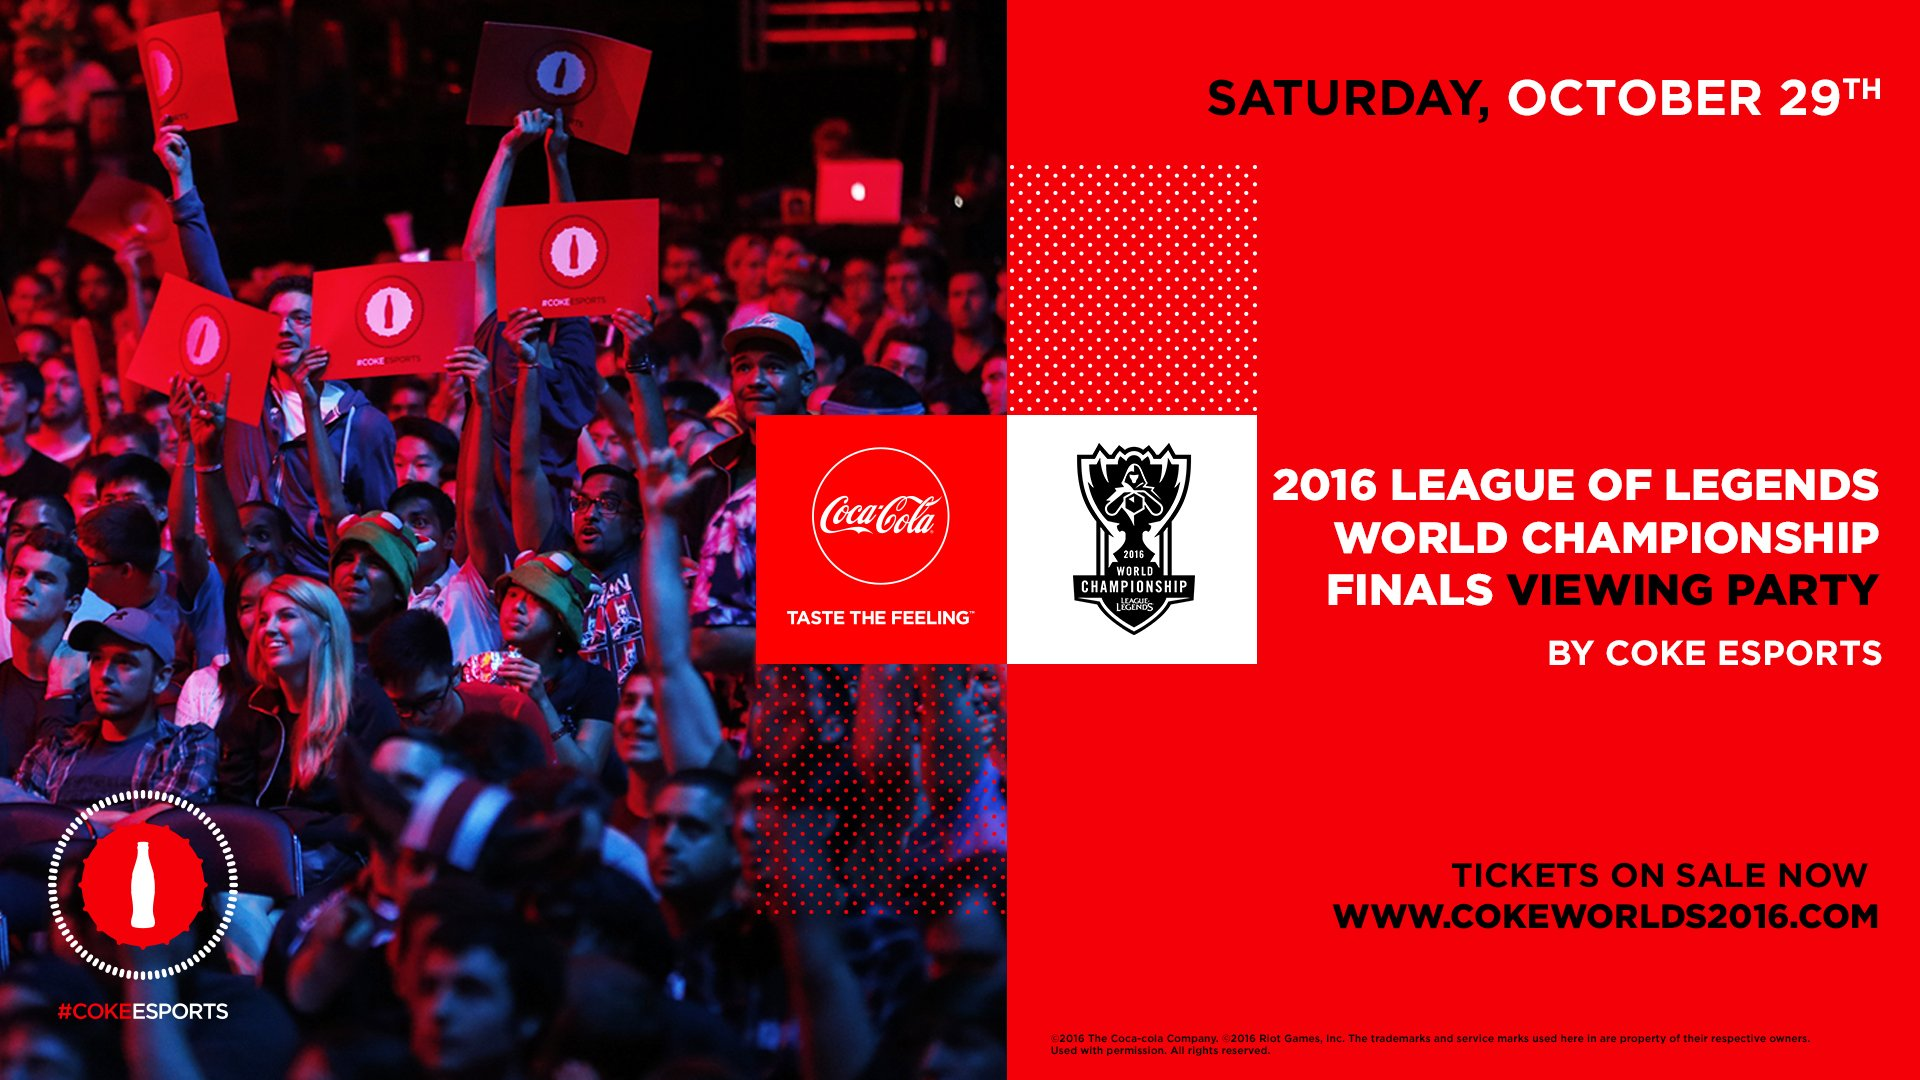 TNL eSports Brand Tracker 041: Coca-Cola (Photo: Coca-Cola)